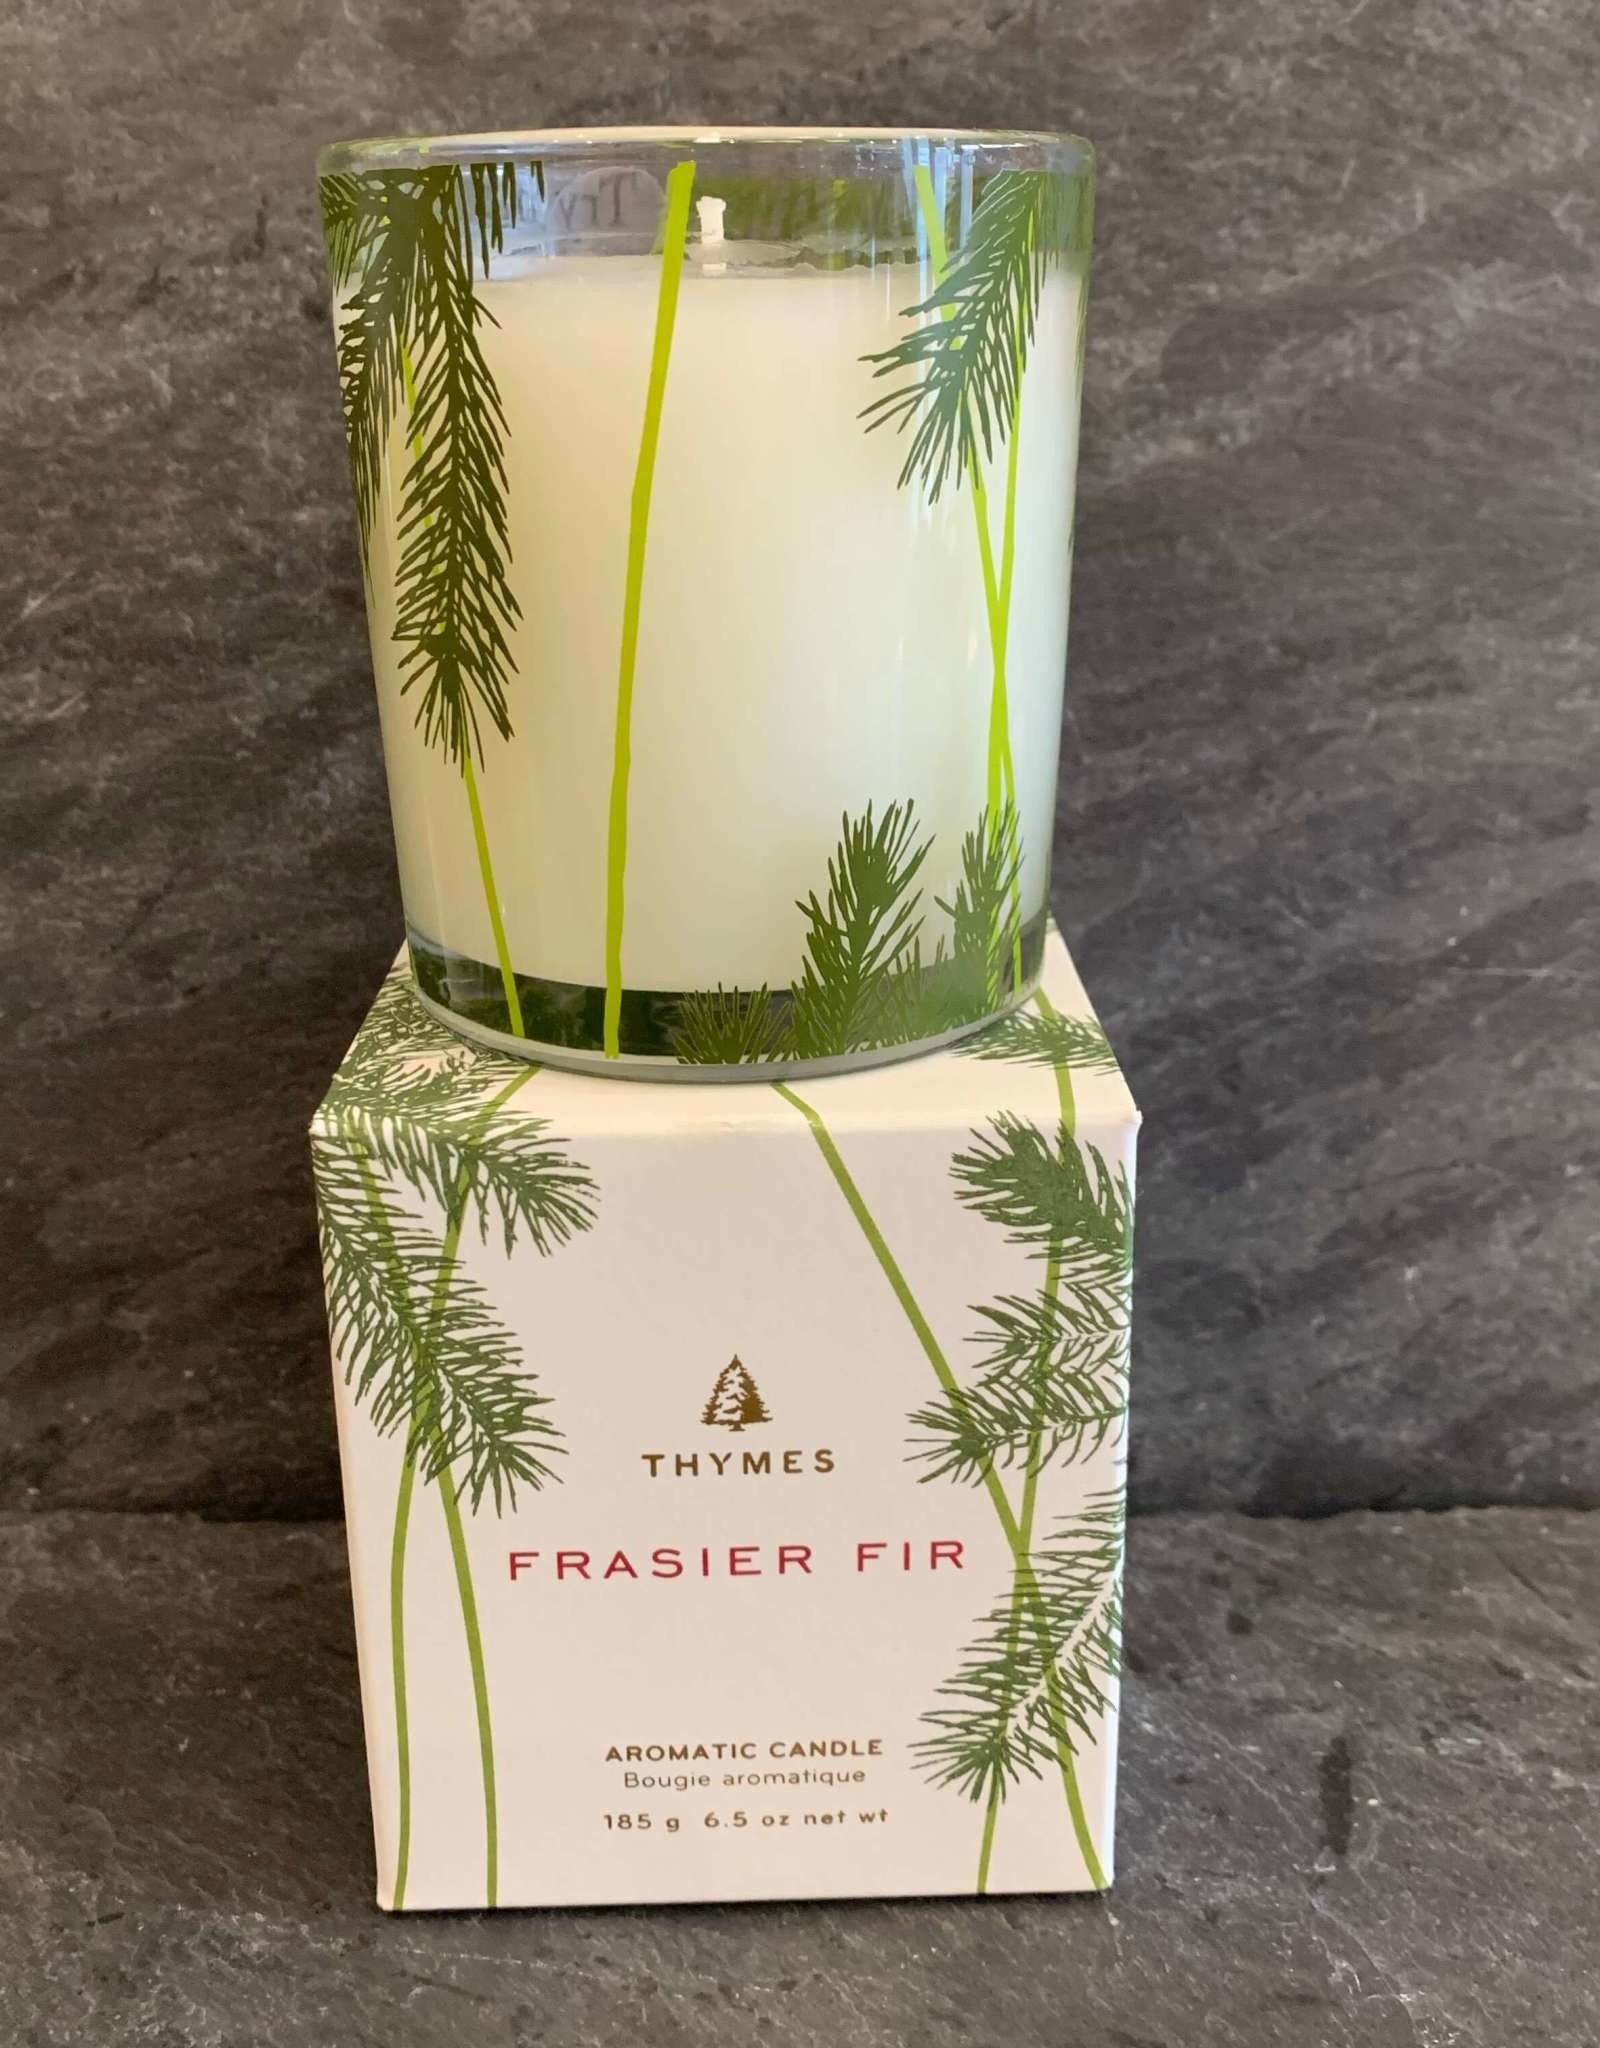 Thymes Frasier Fir Pine Needle Design Poured Candle